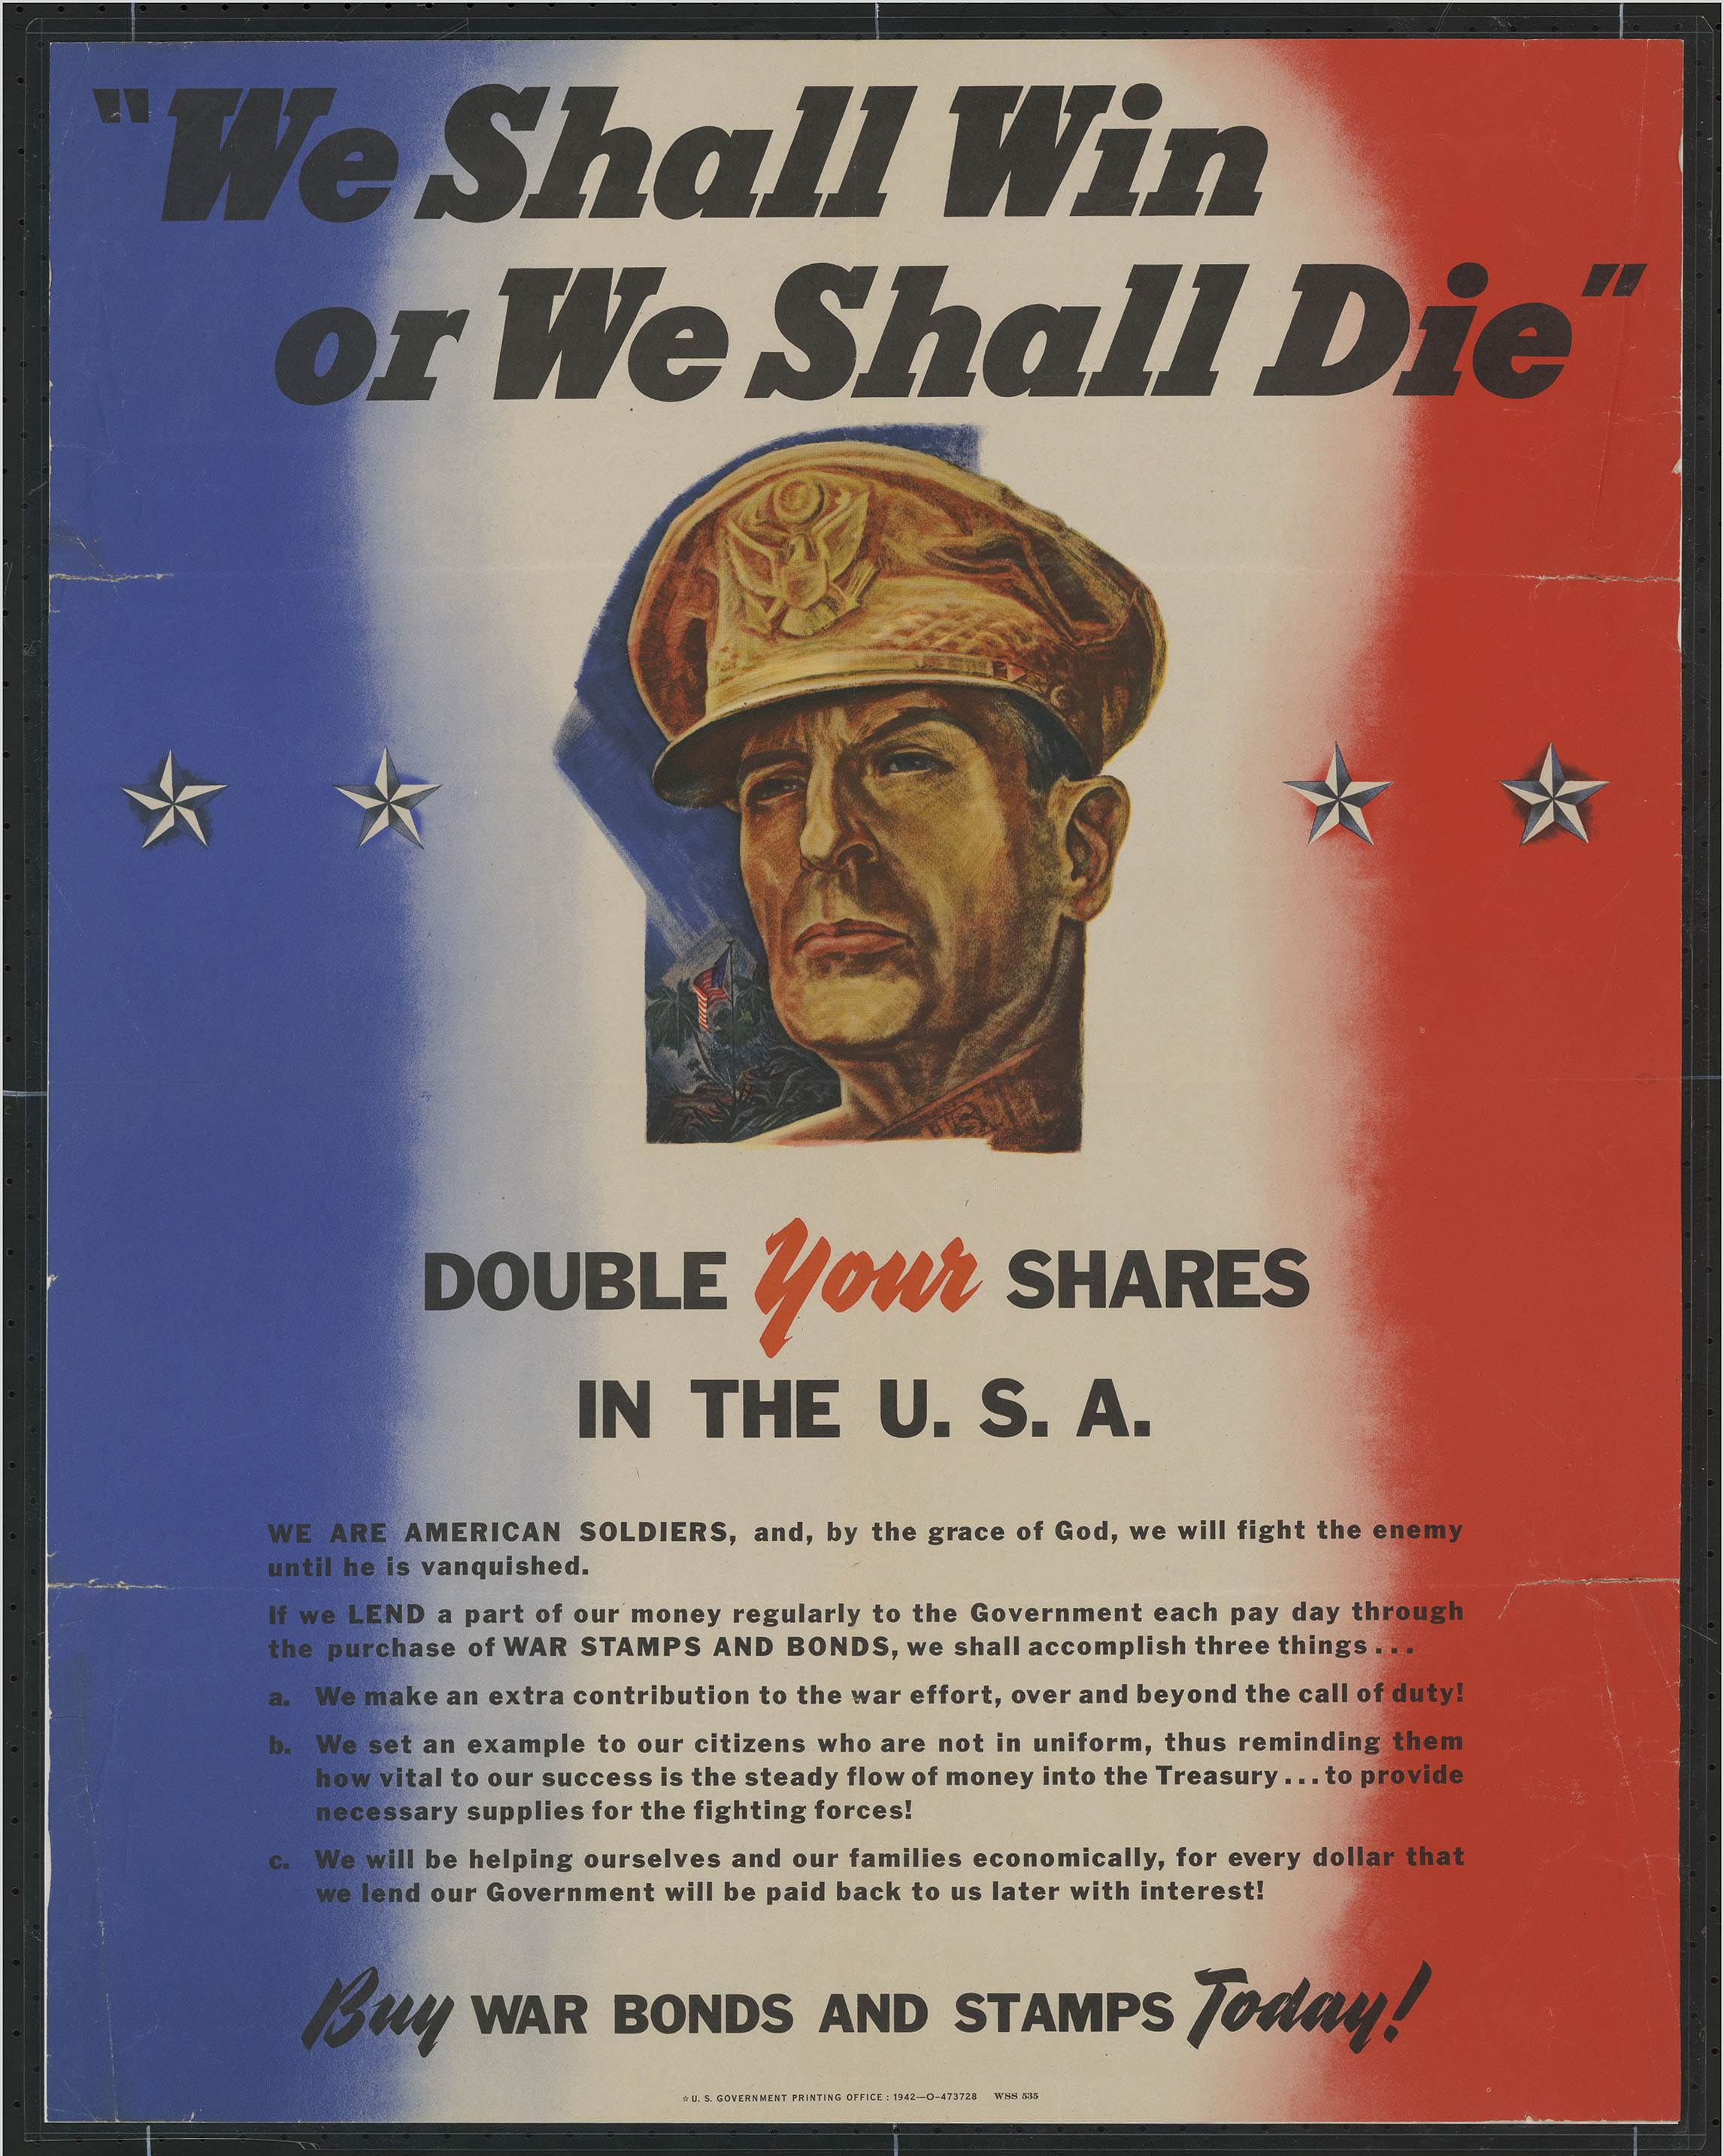 "1942 War Bonds Poster. ""We Shall Win Or We Shall Die"": Double Your Shares In the U.S.A. ... Buy War Bonds and Stamps Today!. Washington, D.C.: U.S. Government Printing Office, 1942.  (Poster 1942 .W4) This 1942 propaganda poster advertises the sale of war bonds as a way for people at home to contribute to the war effort. Since World War II was a ""total war,"" patriotic propaganda was used to garner support for the war on the American home front. The poster's language serves to unite soldiers with civilians back home in a combined revenue-raising effort that both financially and morally supports the war"